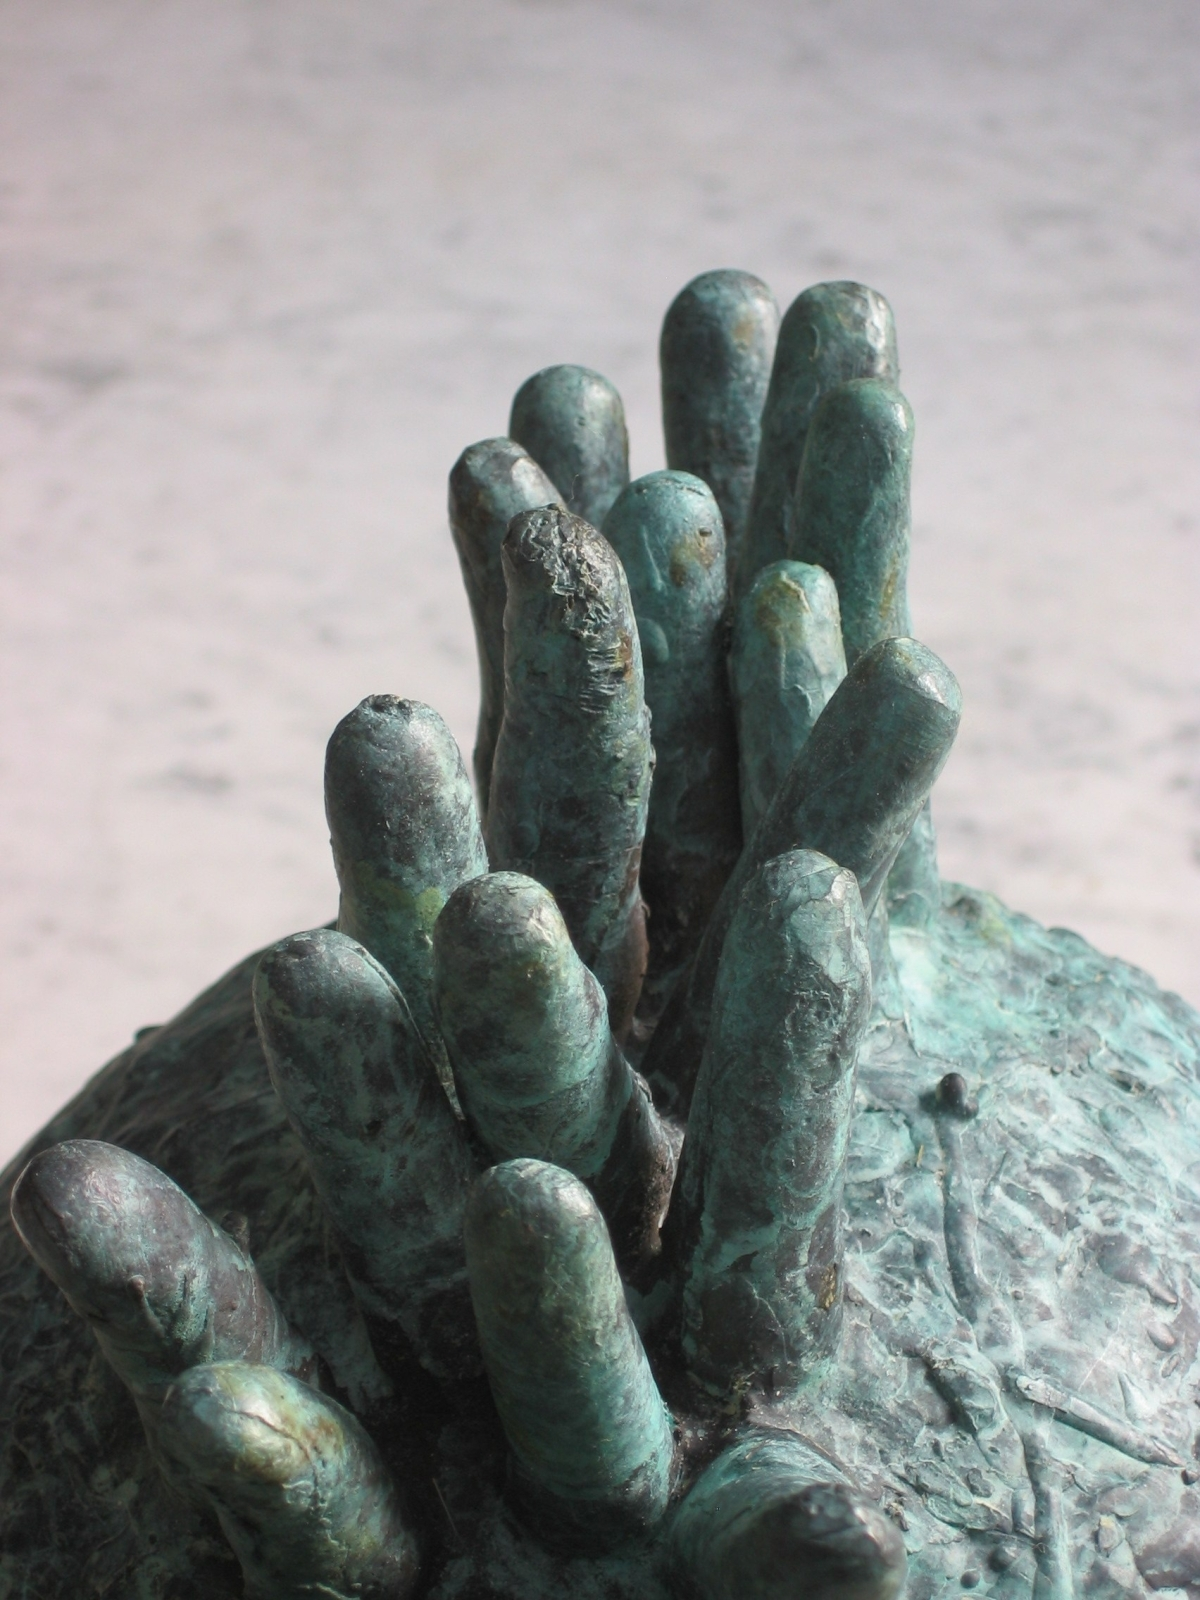 Microcosm 1, 2007, Bronze, 15 in. in circumference, detail